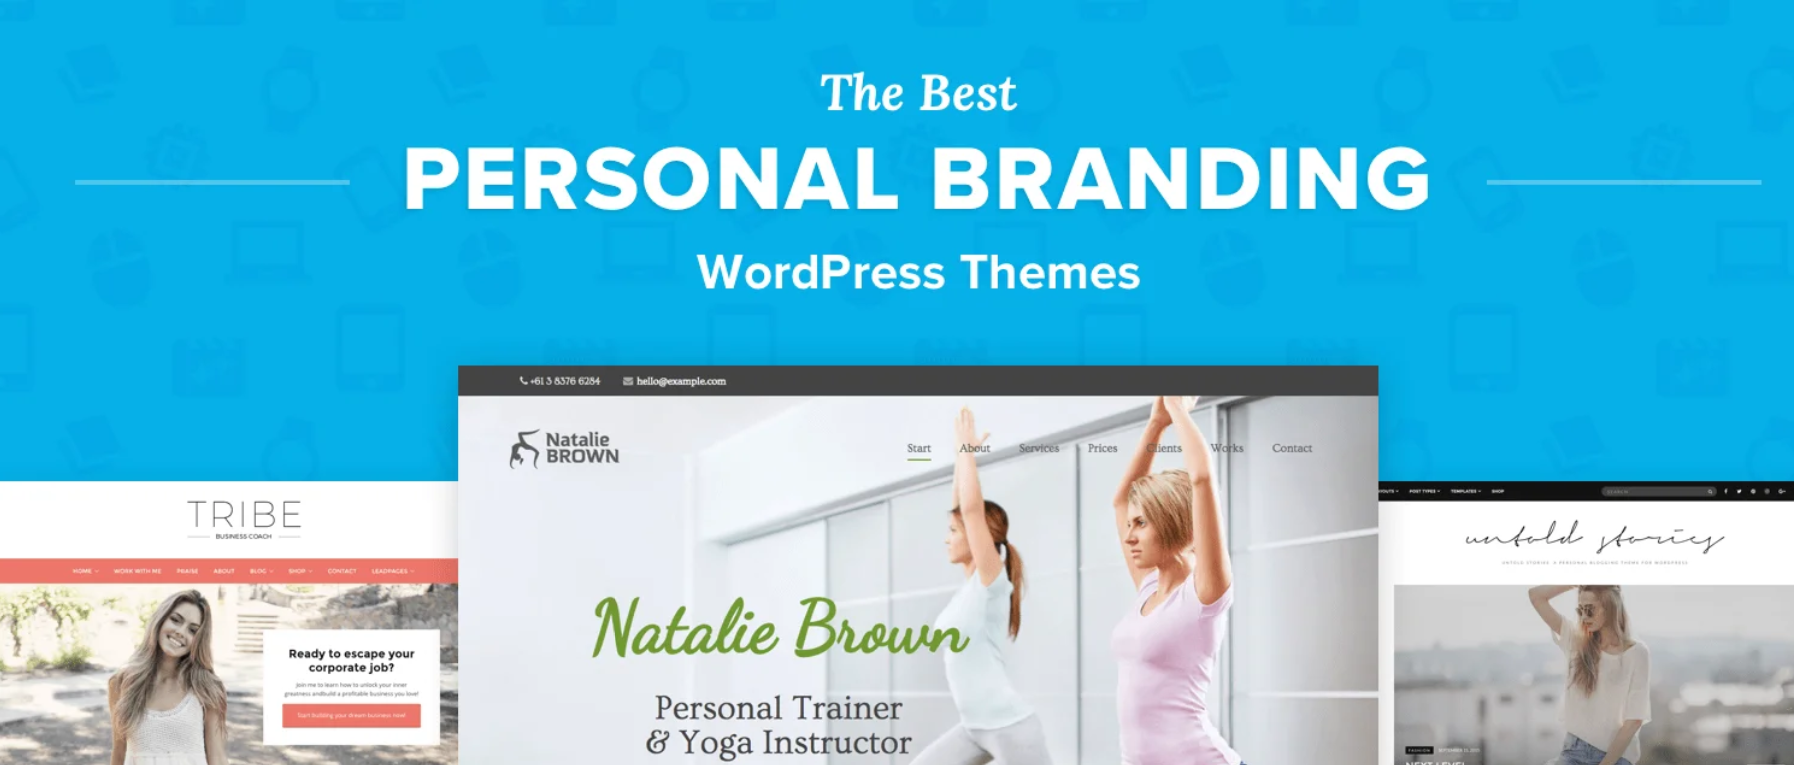 Blogging for Personal Branding You Should Know About.